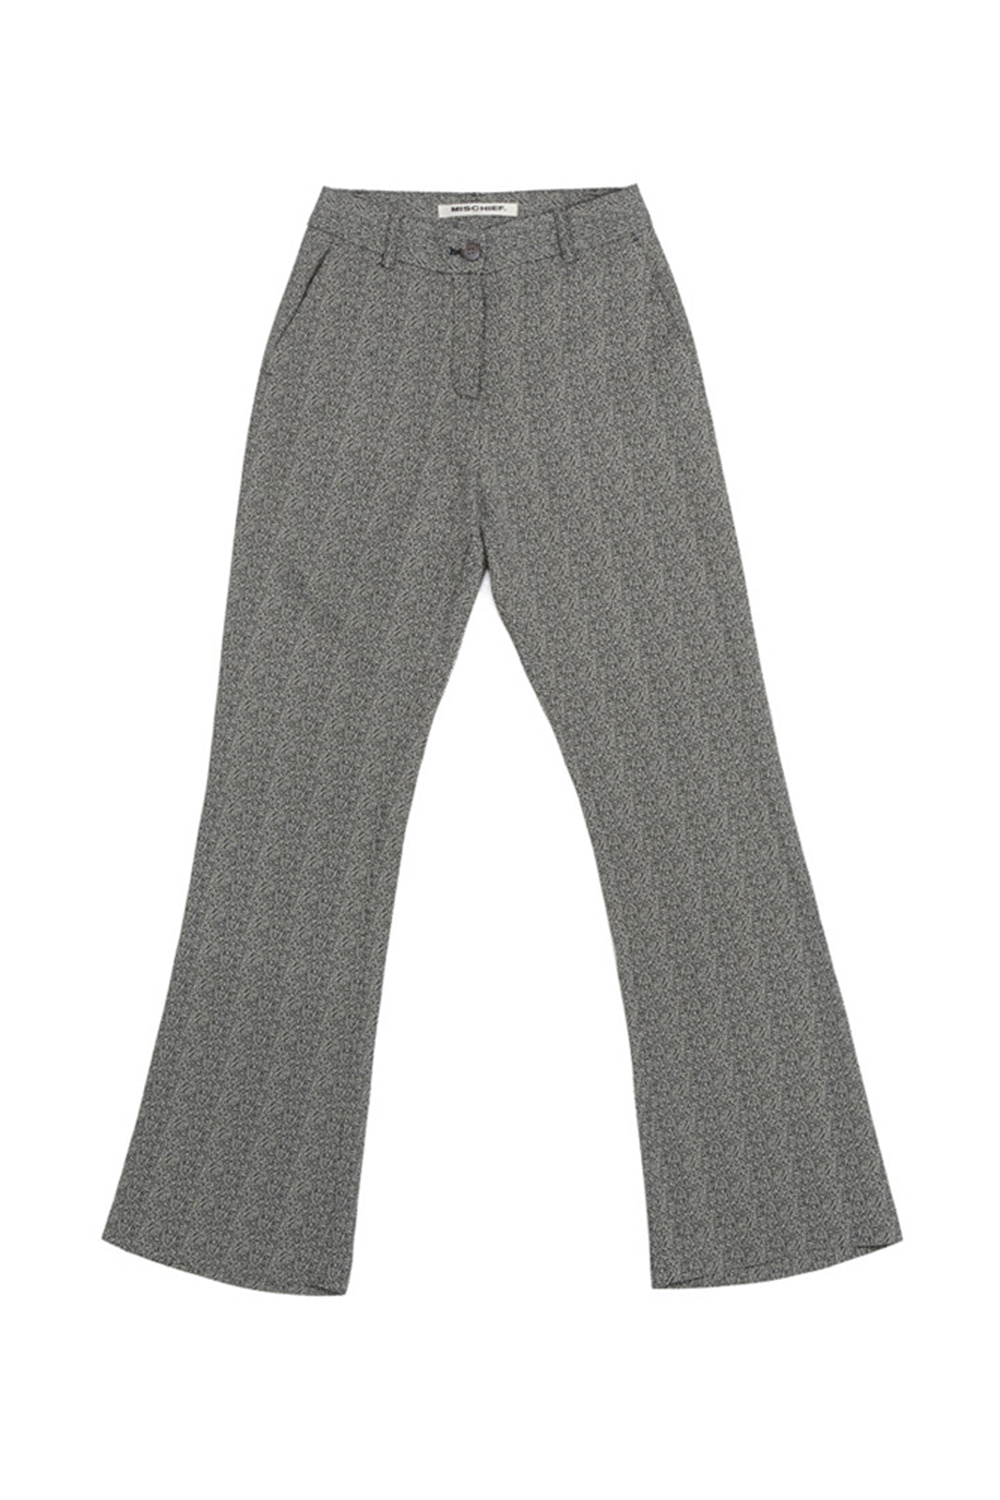 CREPE SLACKS_speckled